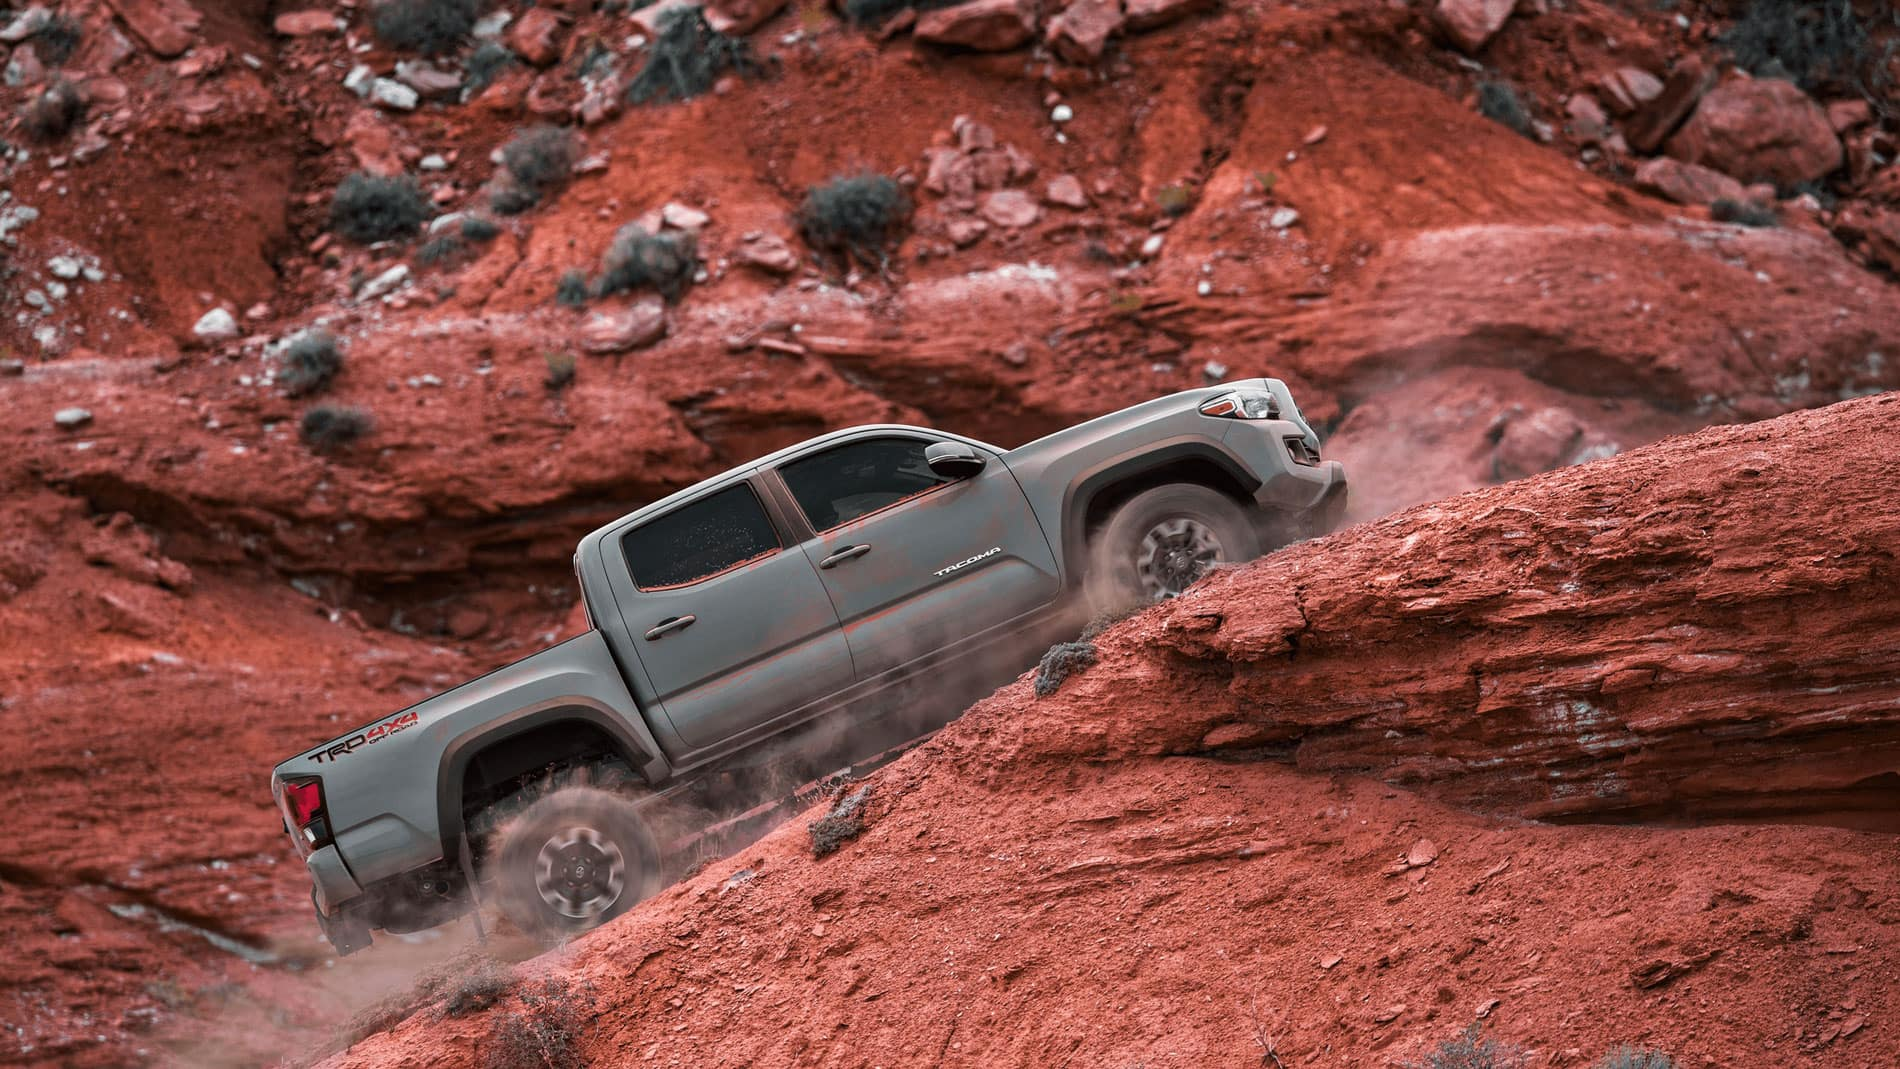 Jeep Gladiator Vs  Toyota Tacoma: The New Face of Midsize